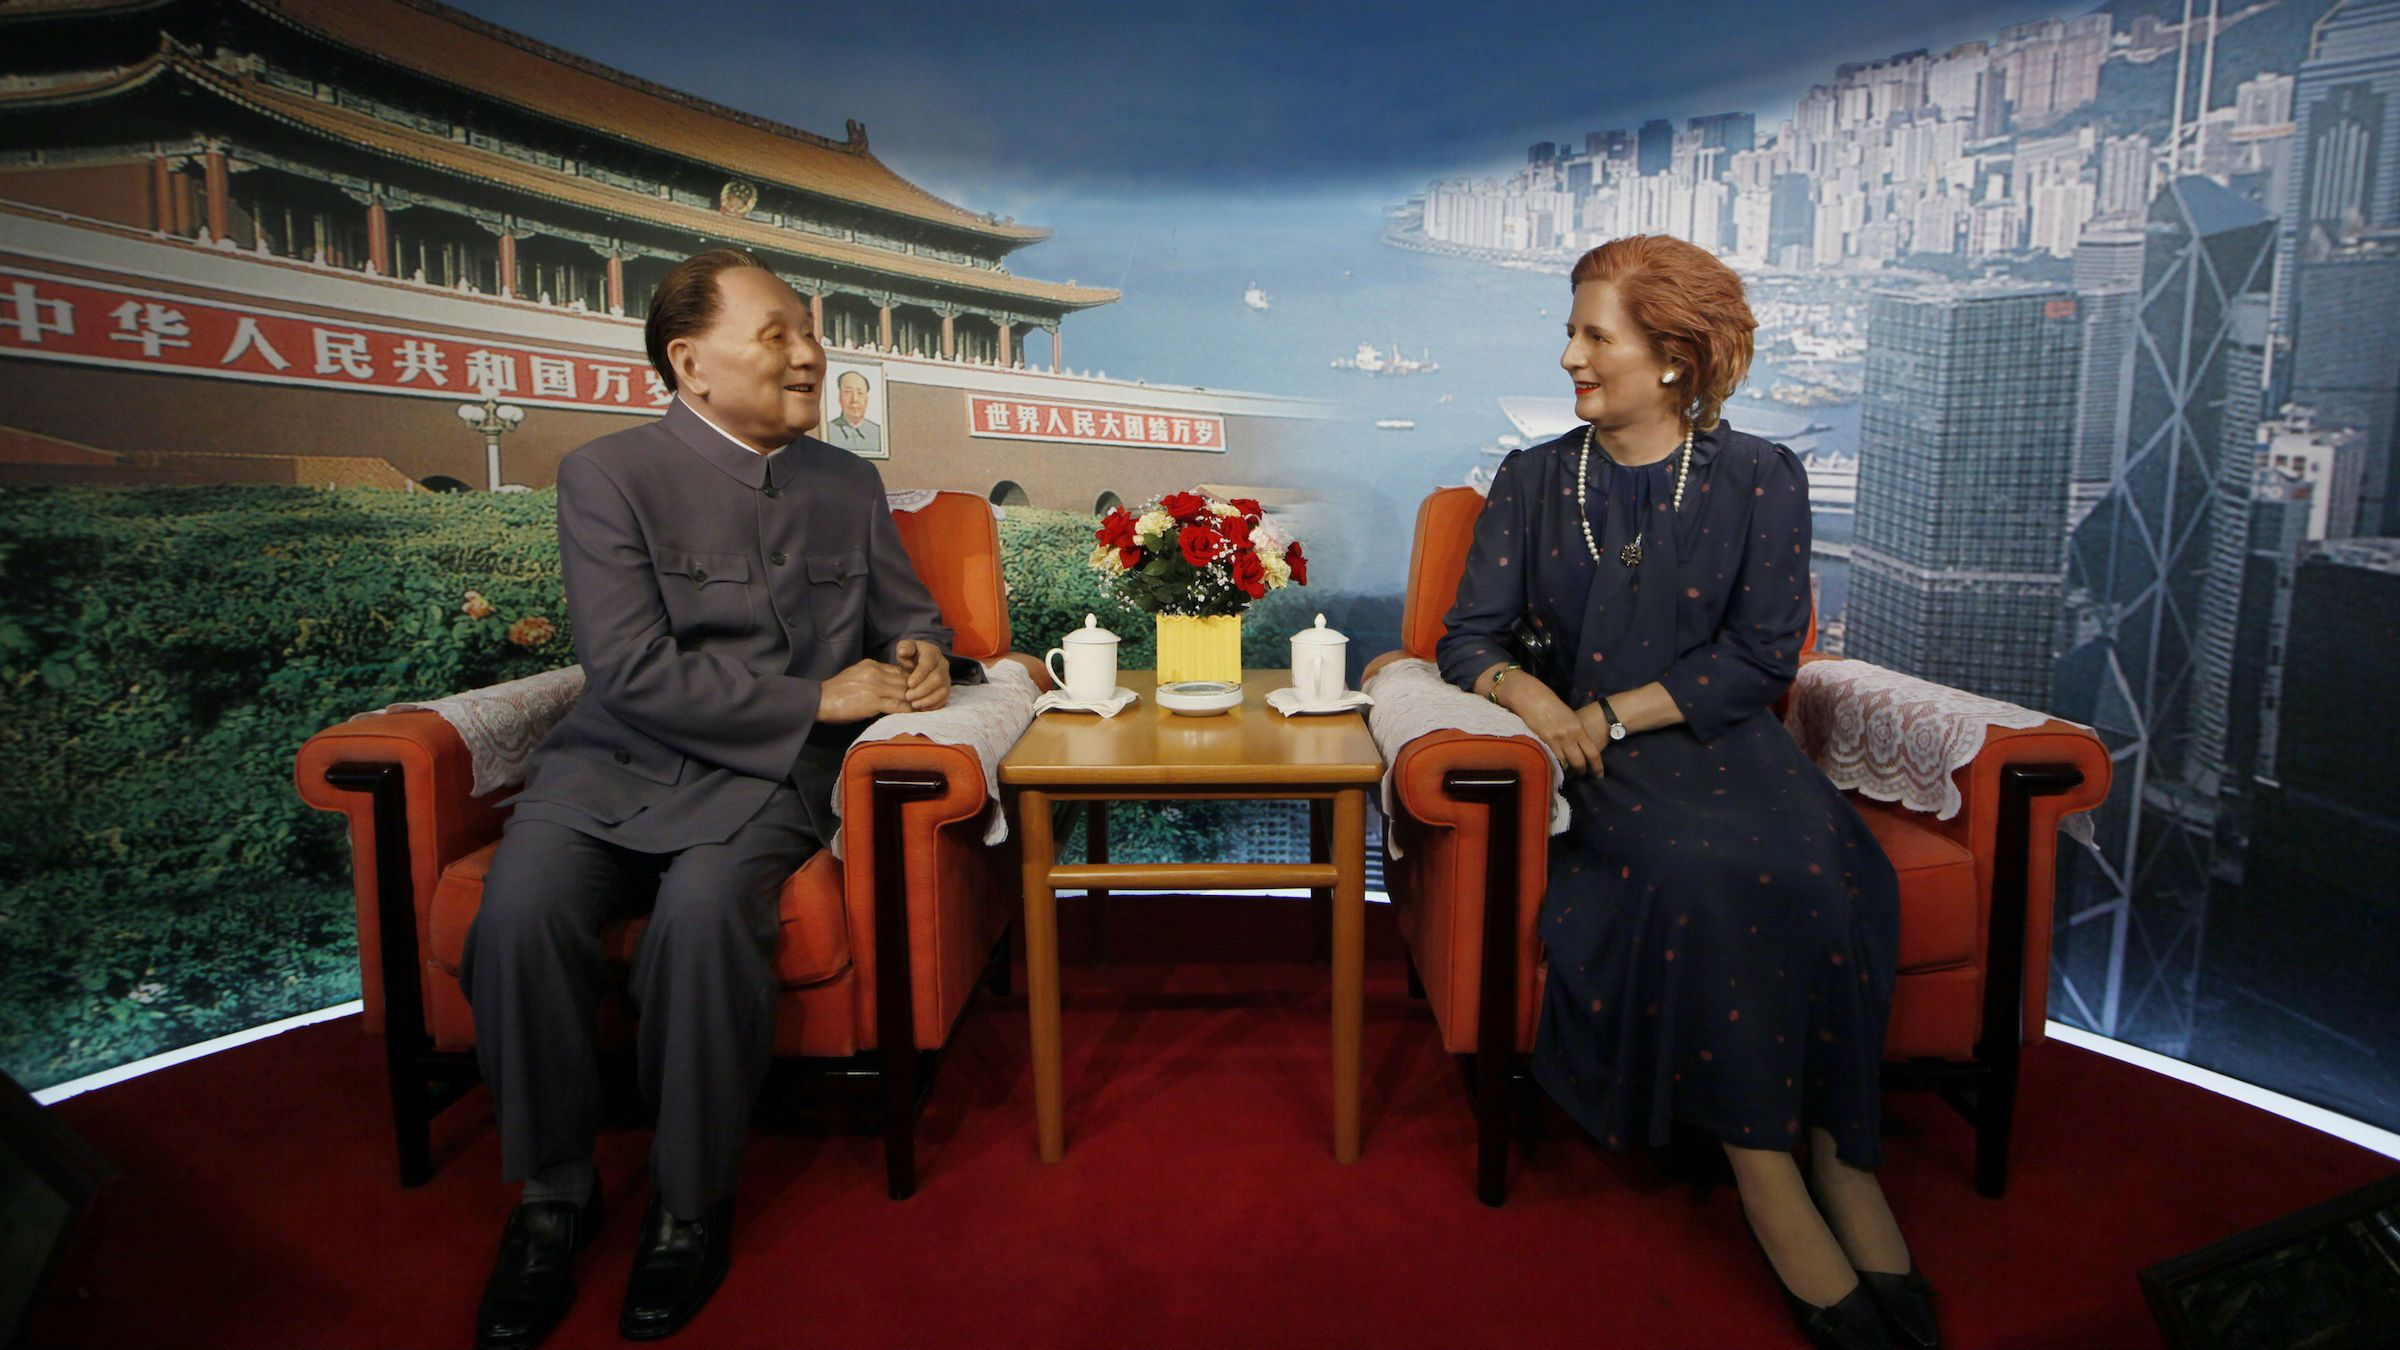 The wax statues setting featuring former British Prime Minister Margaret Thatcher talking with former Chinese leader Deng Xiaoping in the Beijing's Great Hall of the People are on display in an exhibition center in Shenzhen, China Tuesday, April 9, 2013.